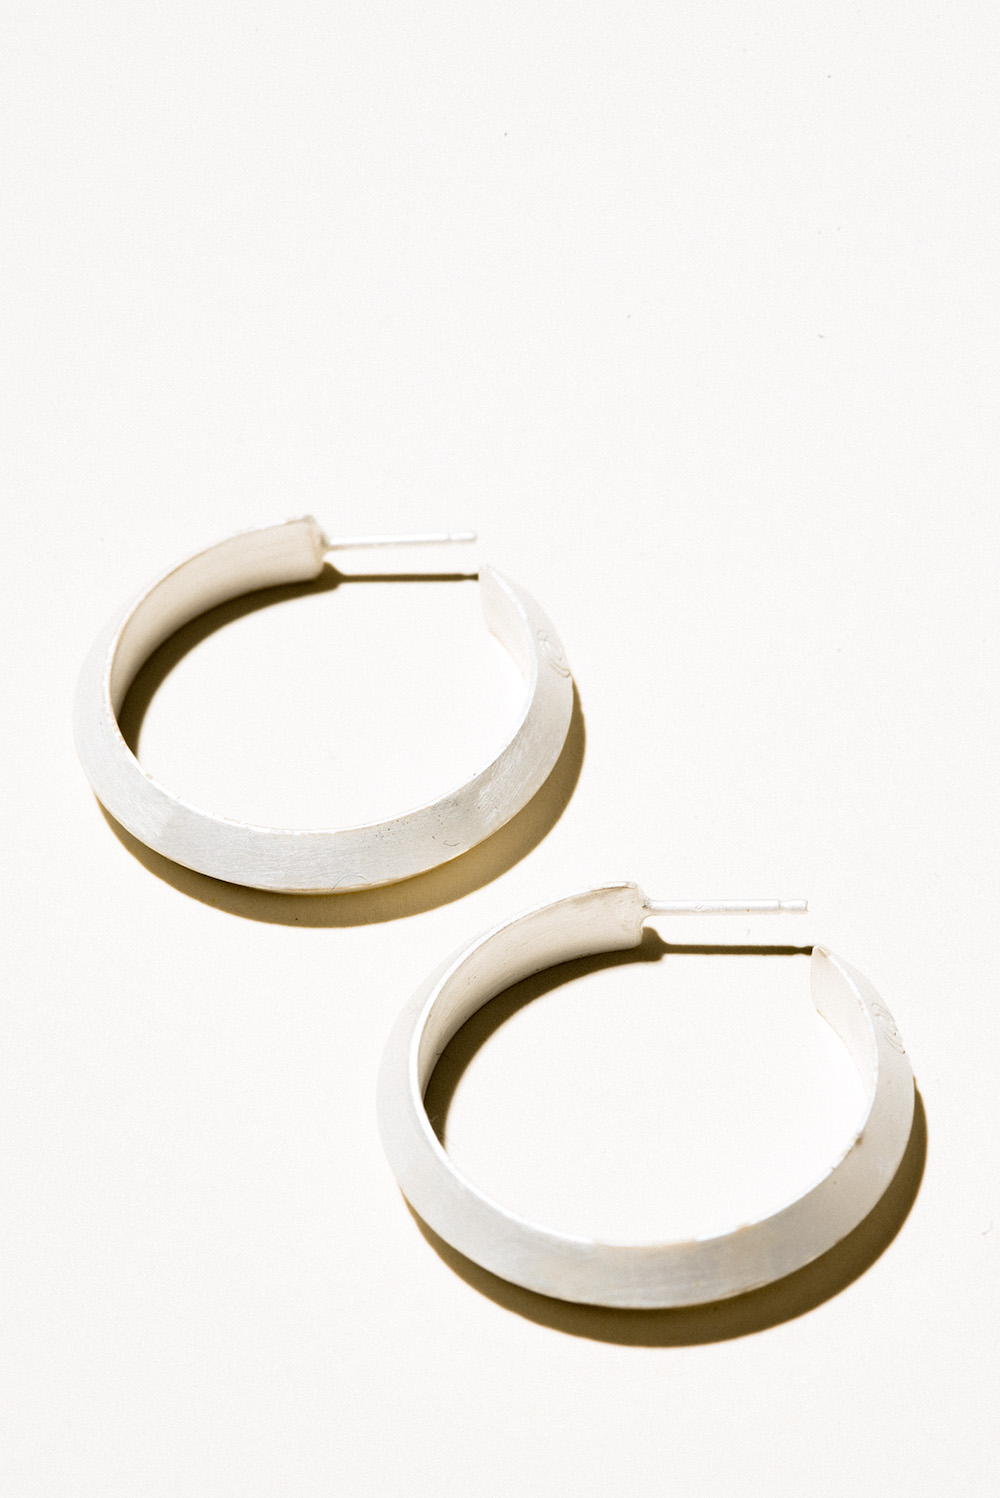 Medium Prism Hoops - 30mm diameterSterling Silver, Raw FinishHand Smithed $200